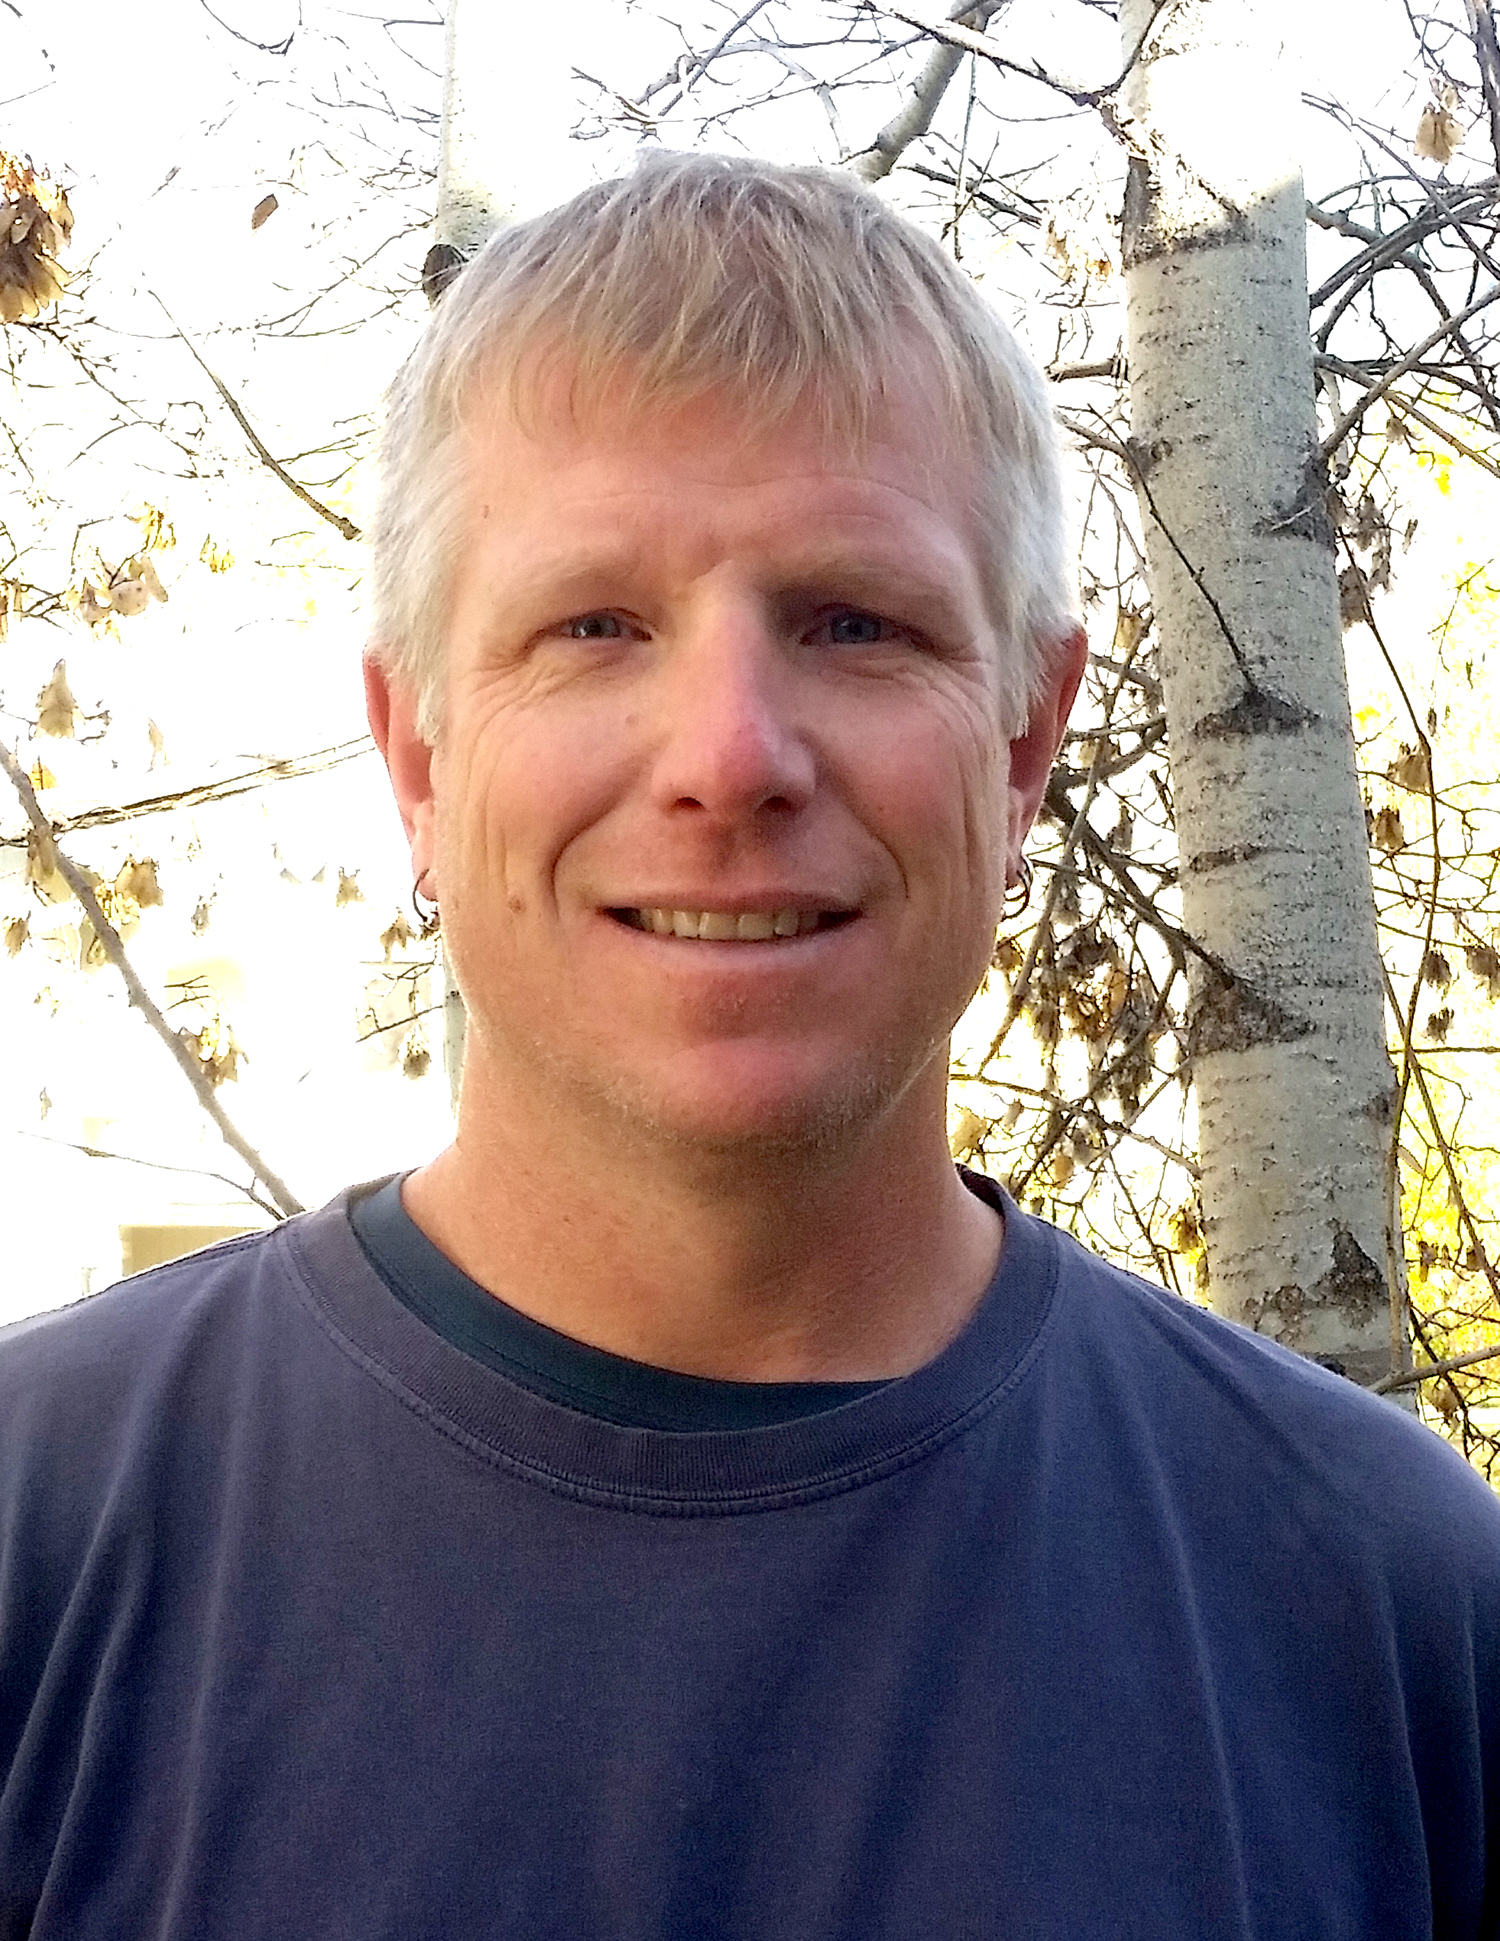 MARK RAYMOND    Mark hails from Maine, is an Alpine Examiner for Professional Ski Instructors of America (PSIA), and serves on the PSIA Rocky Mountain Education Committee.